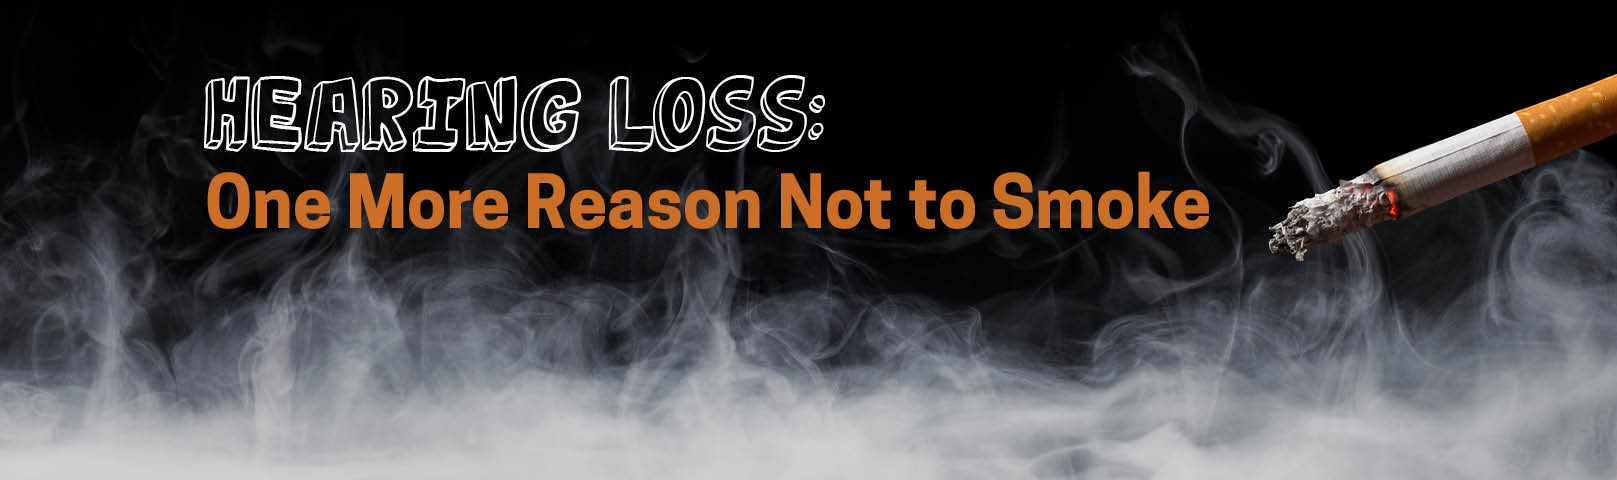 Hearing Loss: One More Reason Not to Smoke